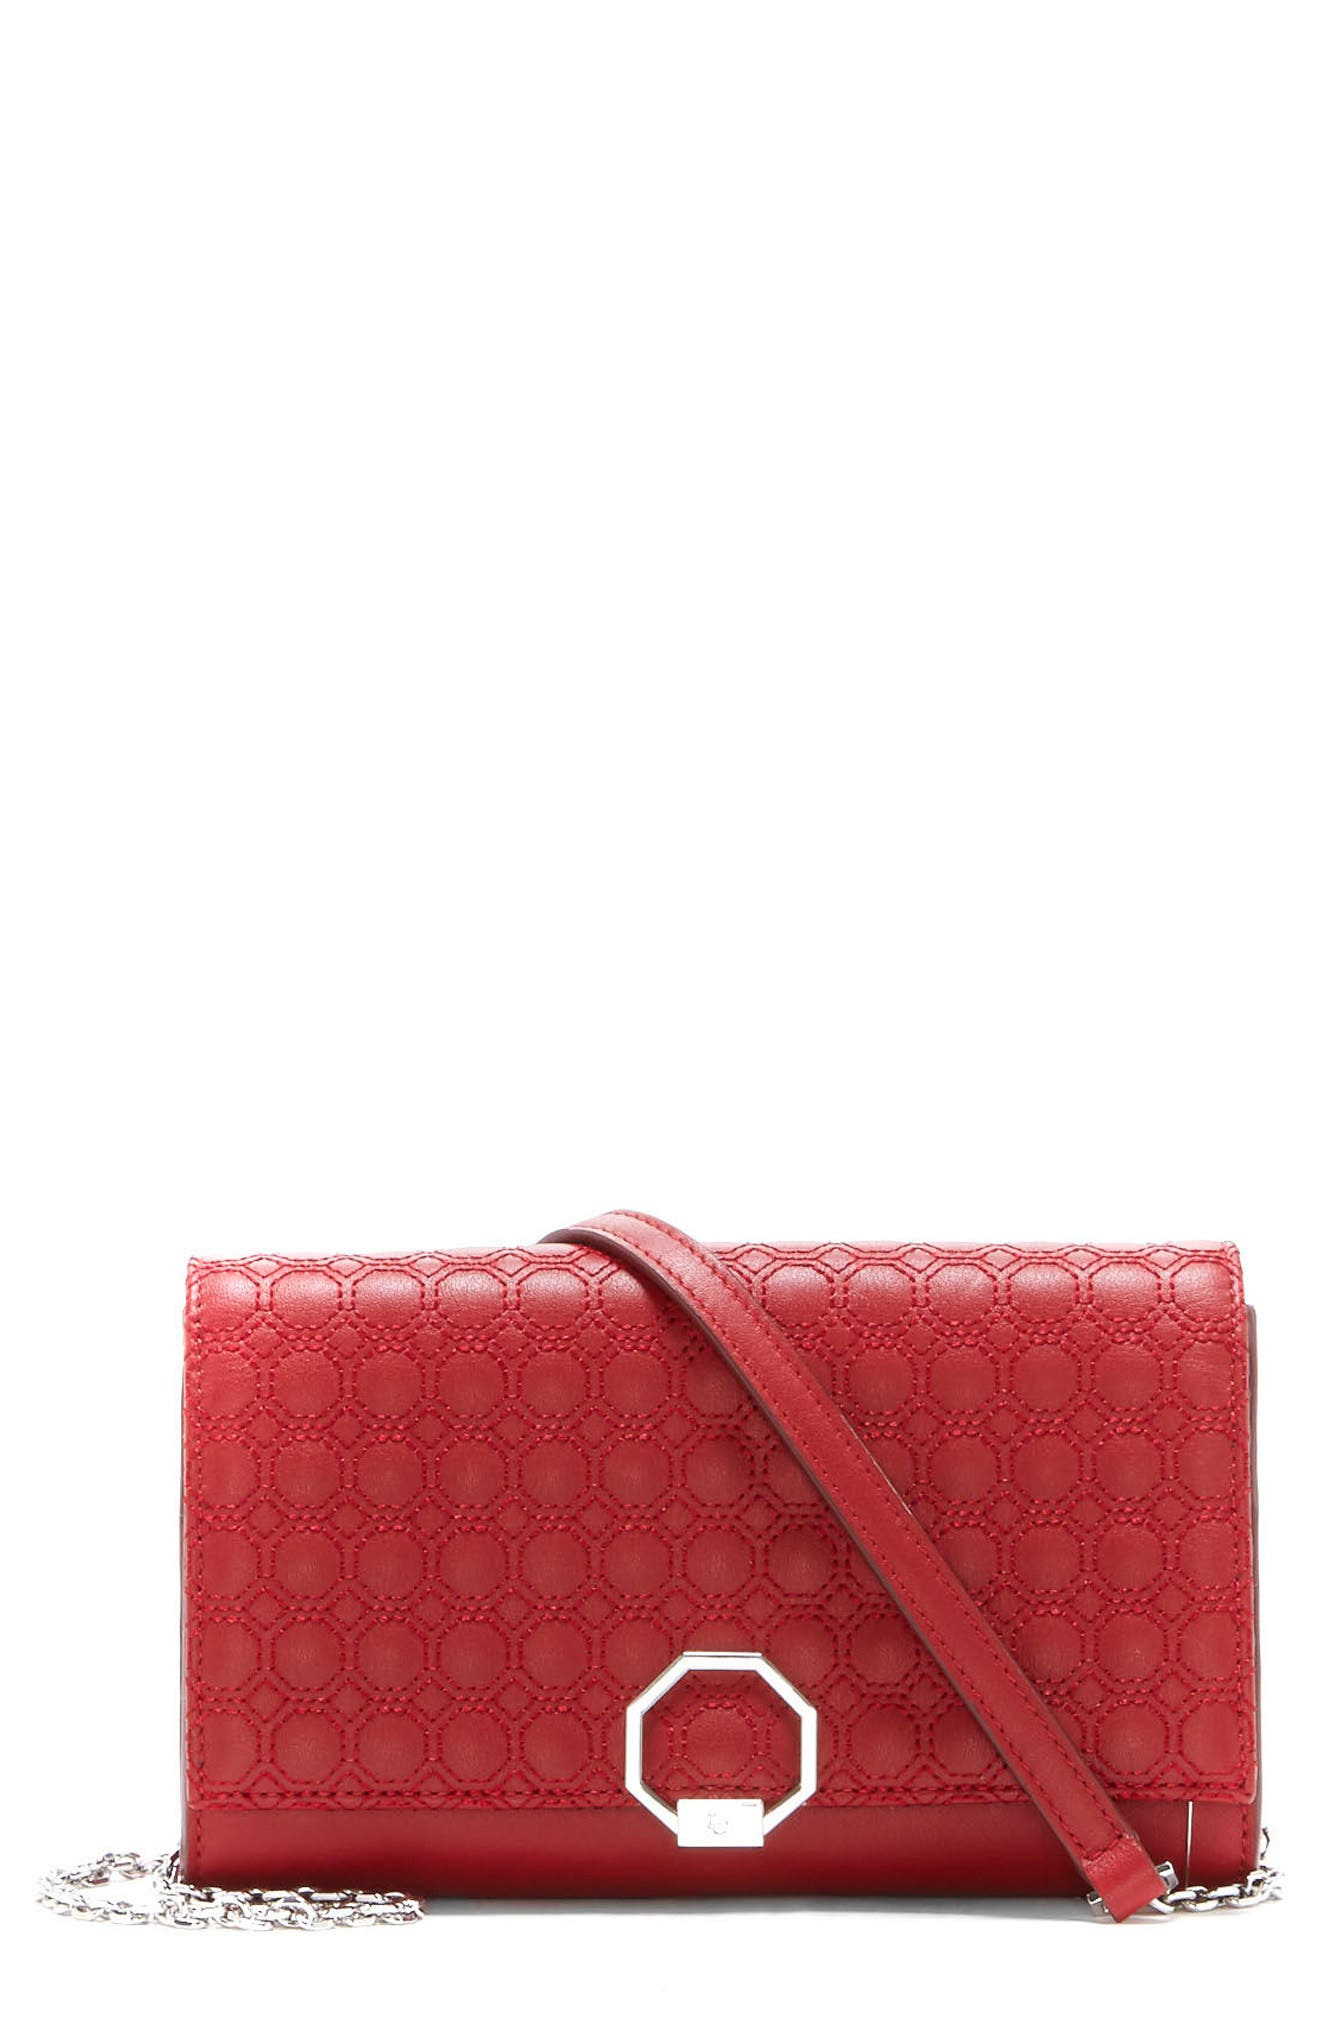 Celya Small Crossbody Bag,                         Main,                         color, Cherry Red